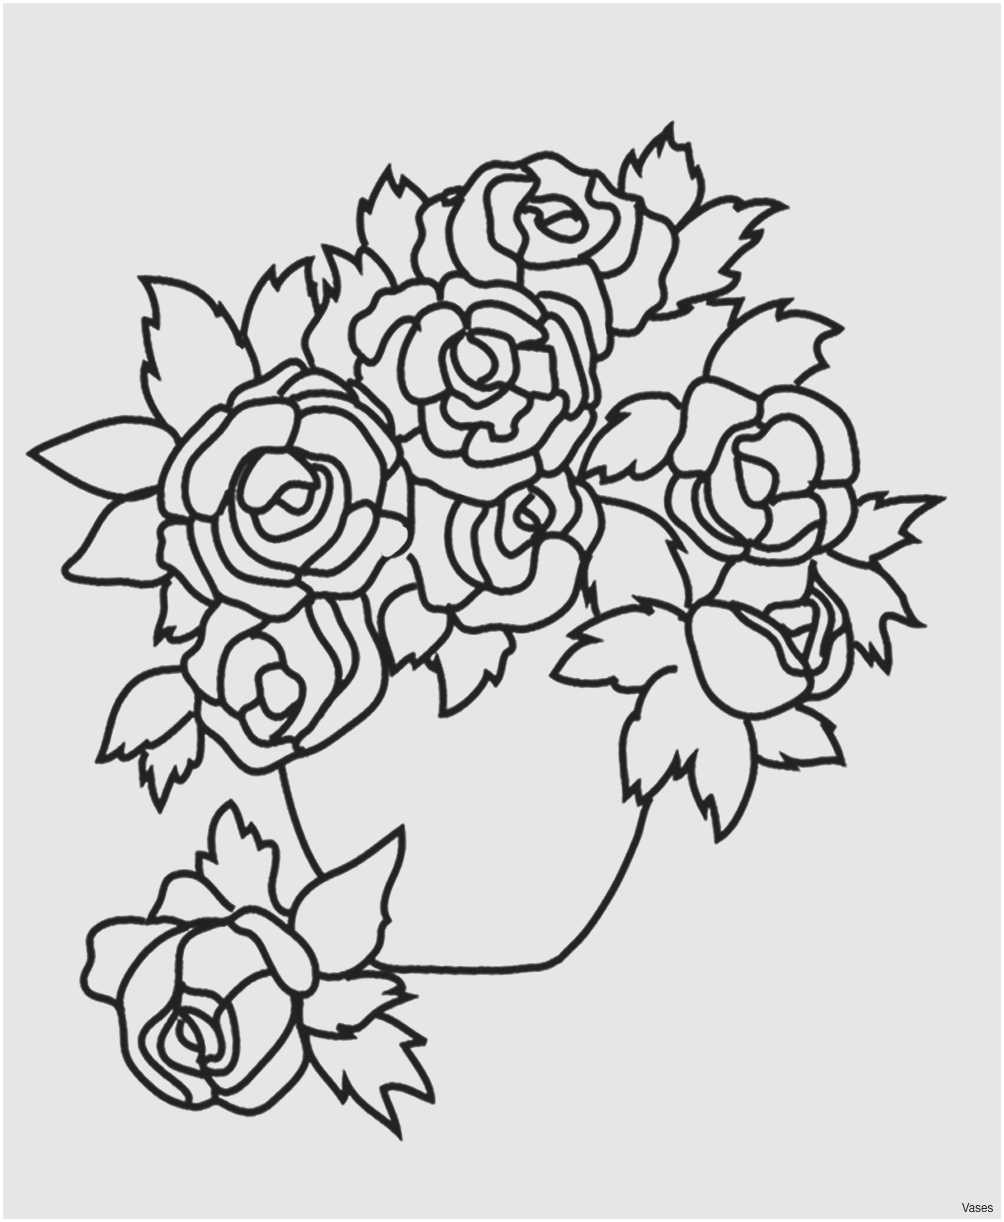 19 Best Black Vase Fillers 2021 free download black vase fillers of 16 lovely flowers in a tall white vase bogekompresorturkiye com intended for vases flowers in vase coloring pages a flower top i 0d flowers awesome